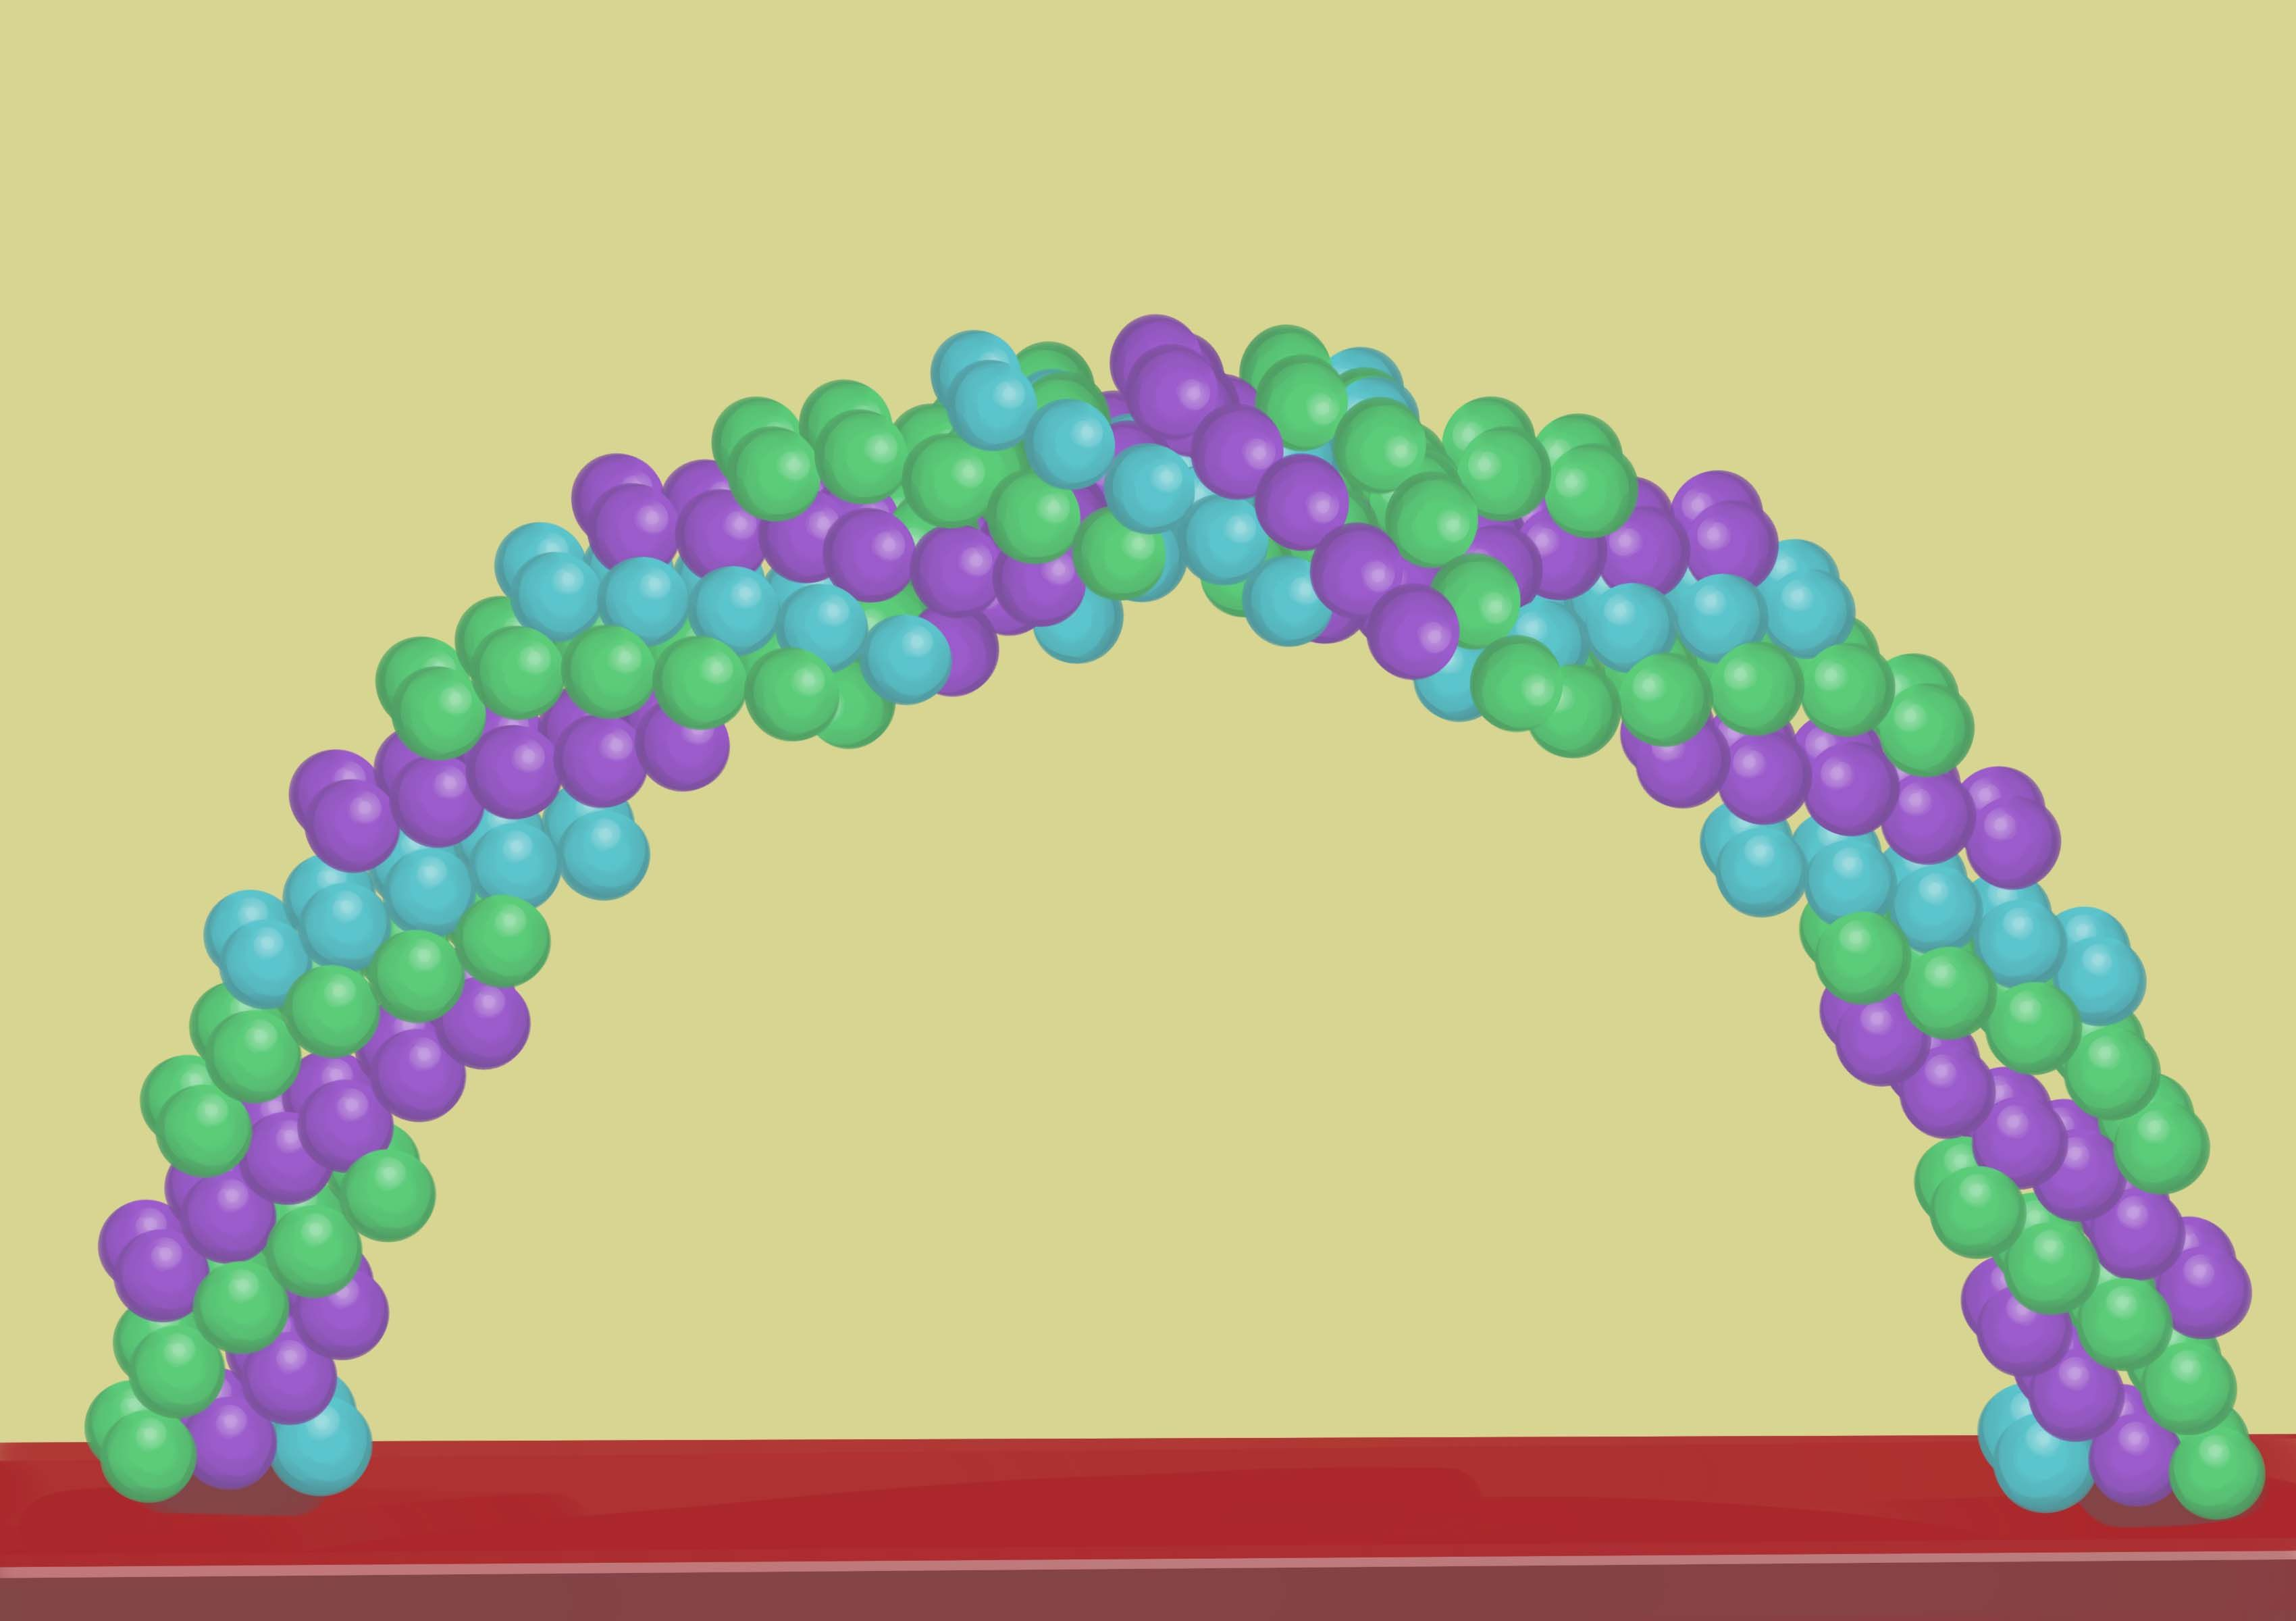 Dorable How To Make A Balloon Arch Without Helium And Frame Frieze ...